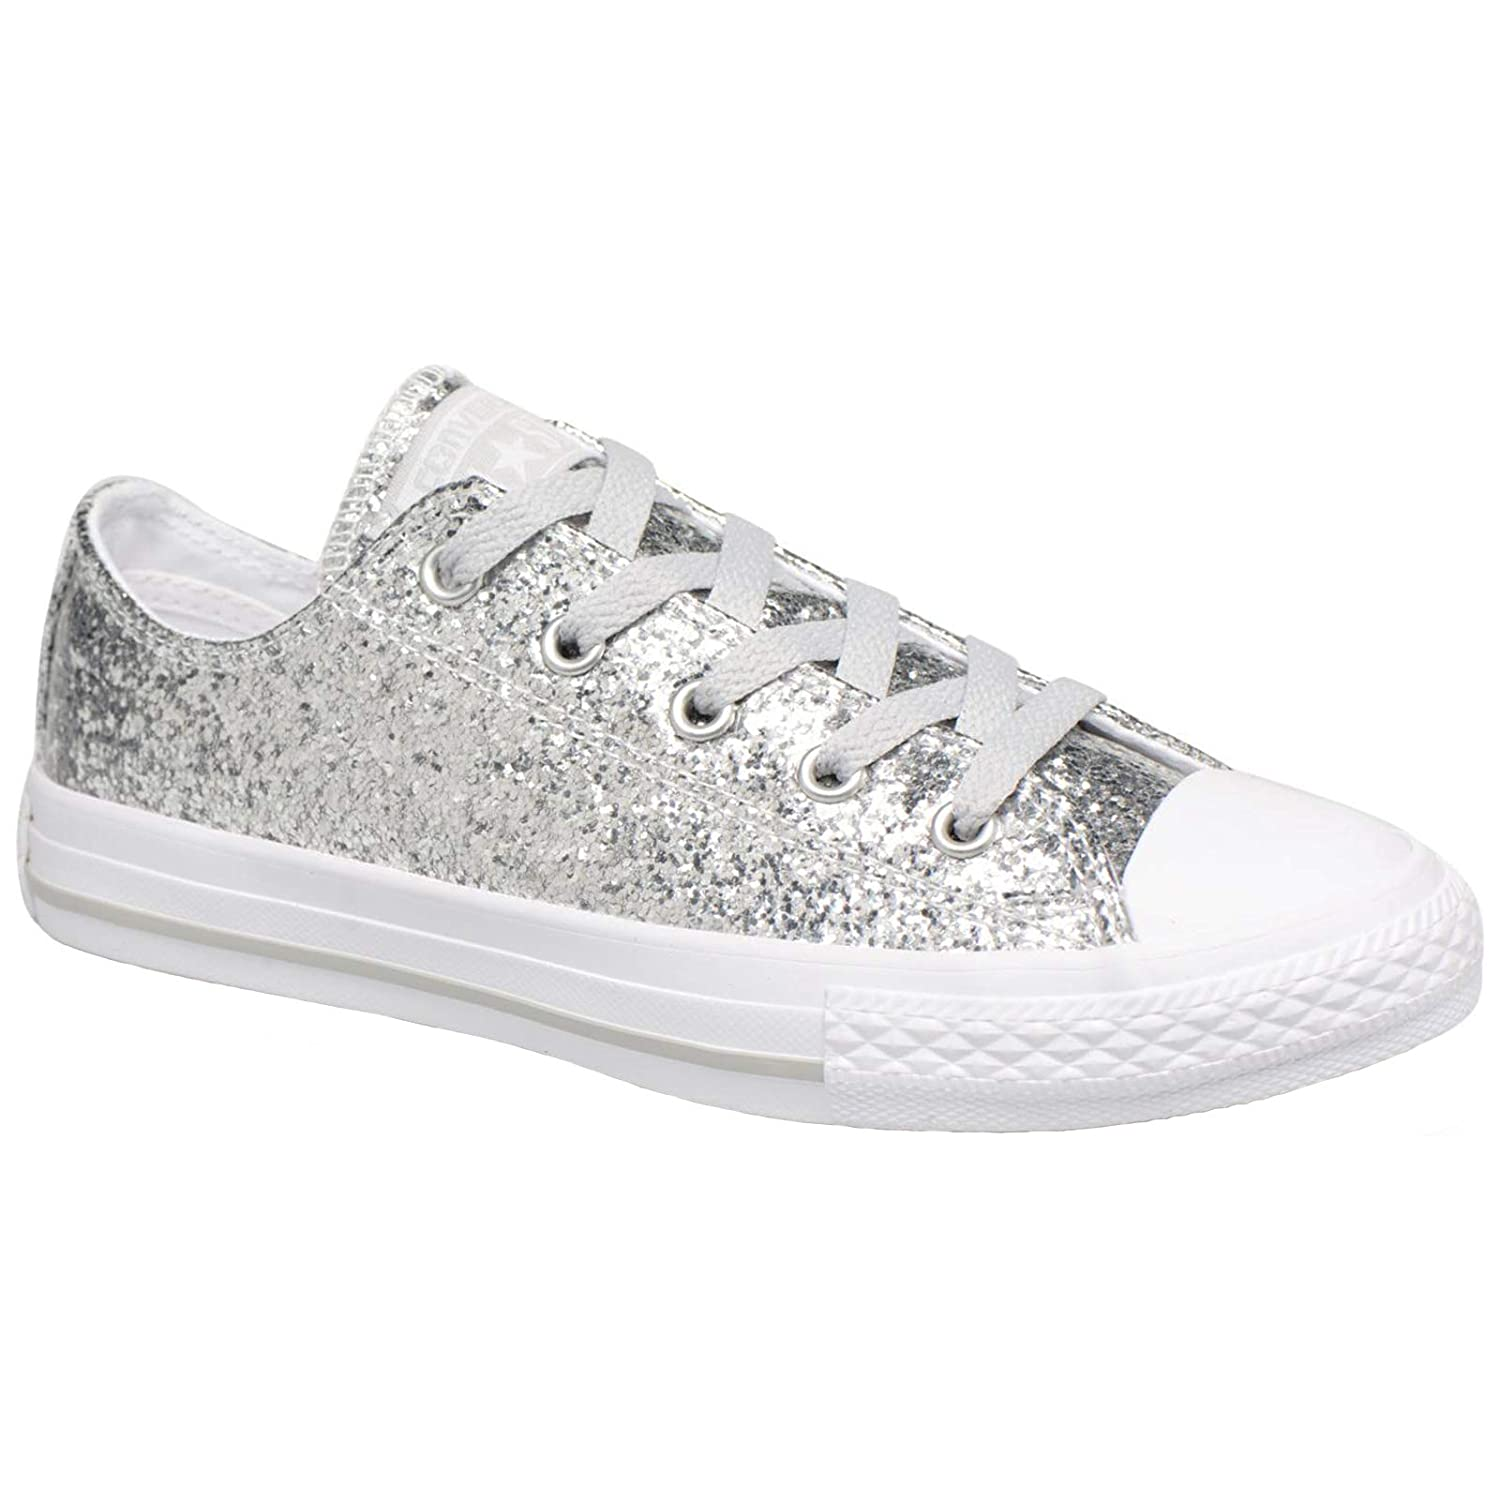 Converse Ctas Ctas Baskets Core Hi, Baskets mode Converse mixte adulte 1c3f2f2 - deadsea.space